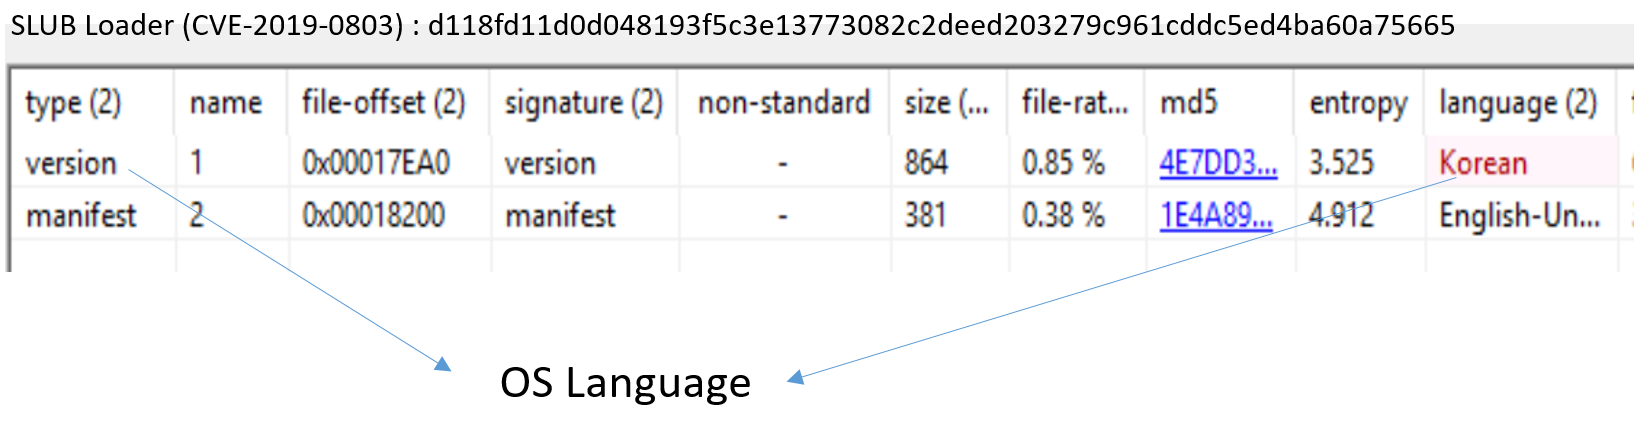 Figure 2. Language ID of the Version Resource